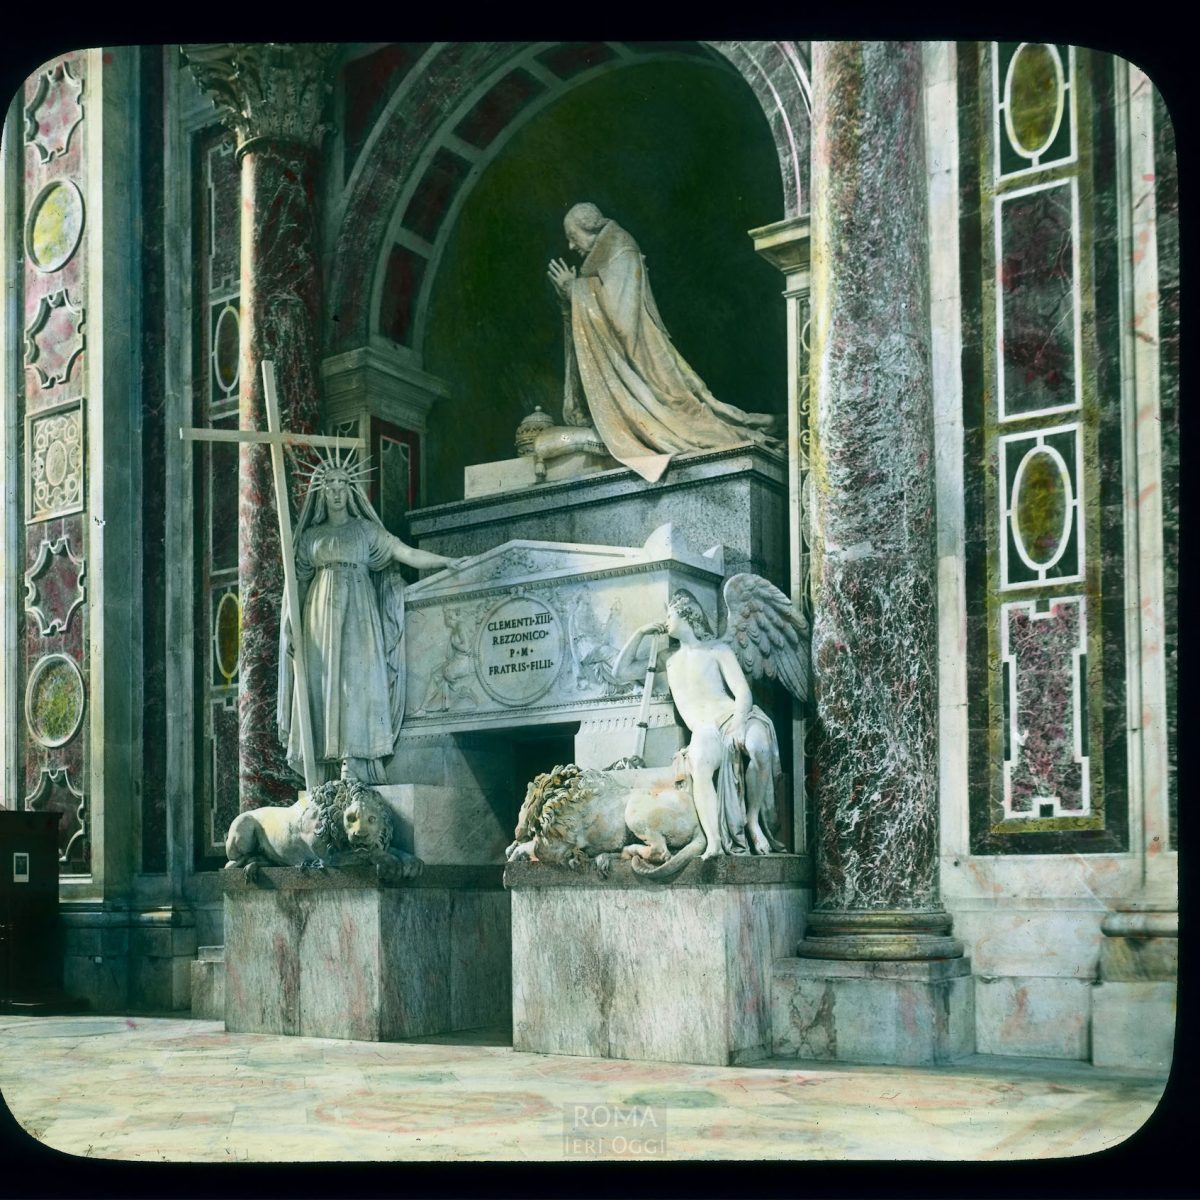 """Vatican City. St. Peter's Basilica: Canova's """"Tomb of Pope Clement XIII (Monument to Clement XIII)"""" View in tinted lantern slide, ca. 1919-1938. The marble monument dates from 1783-1792."""